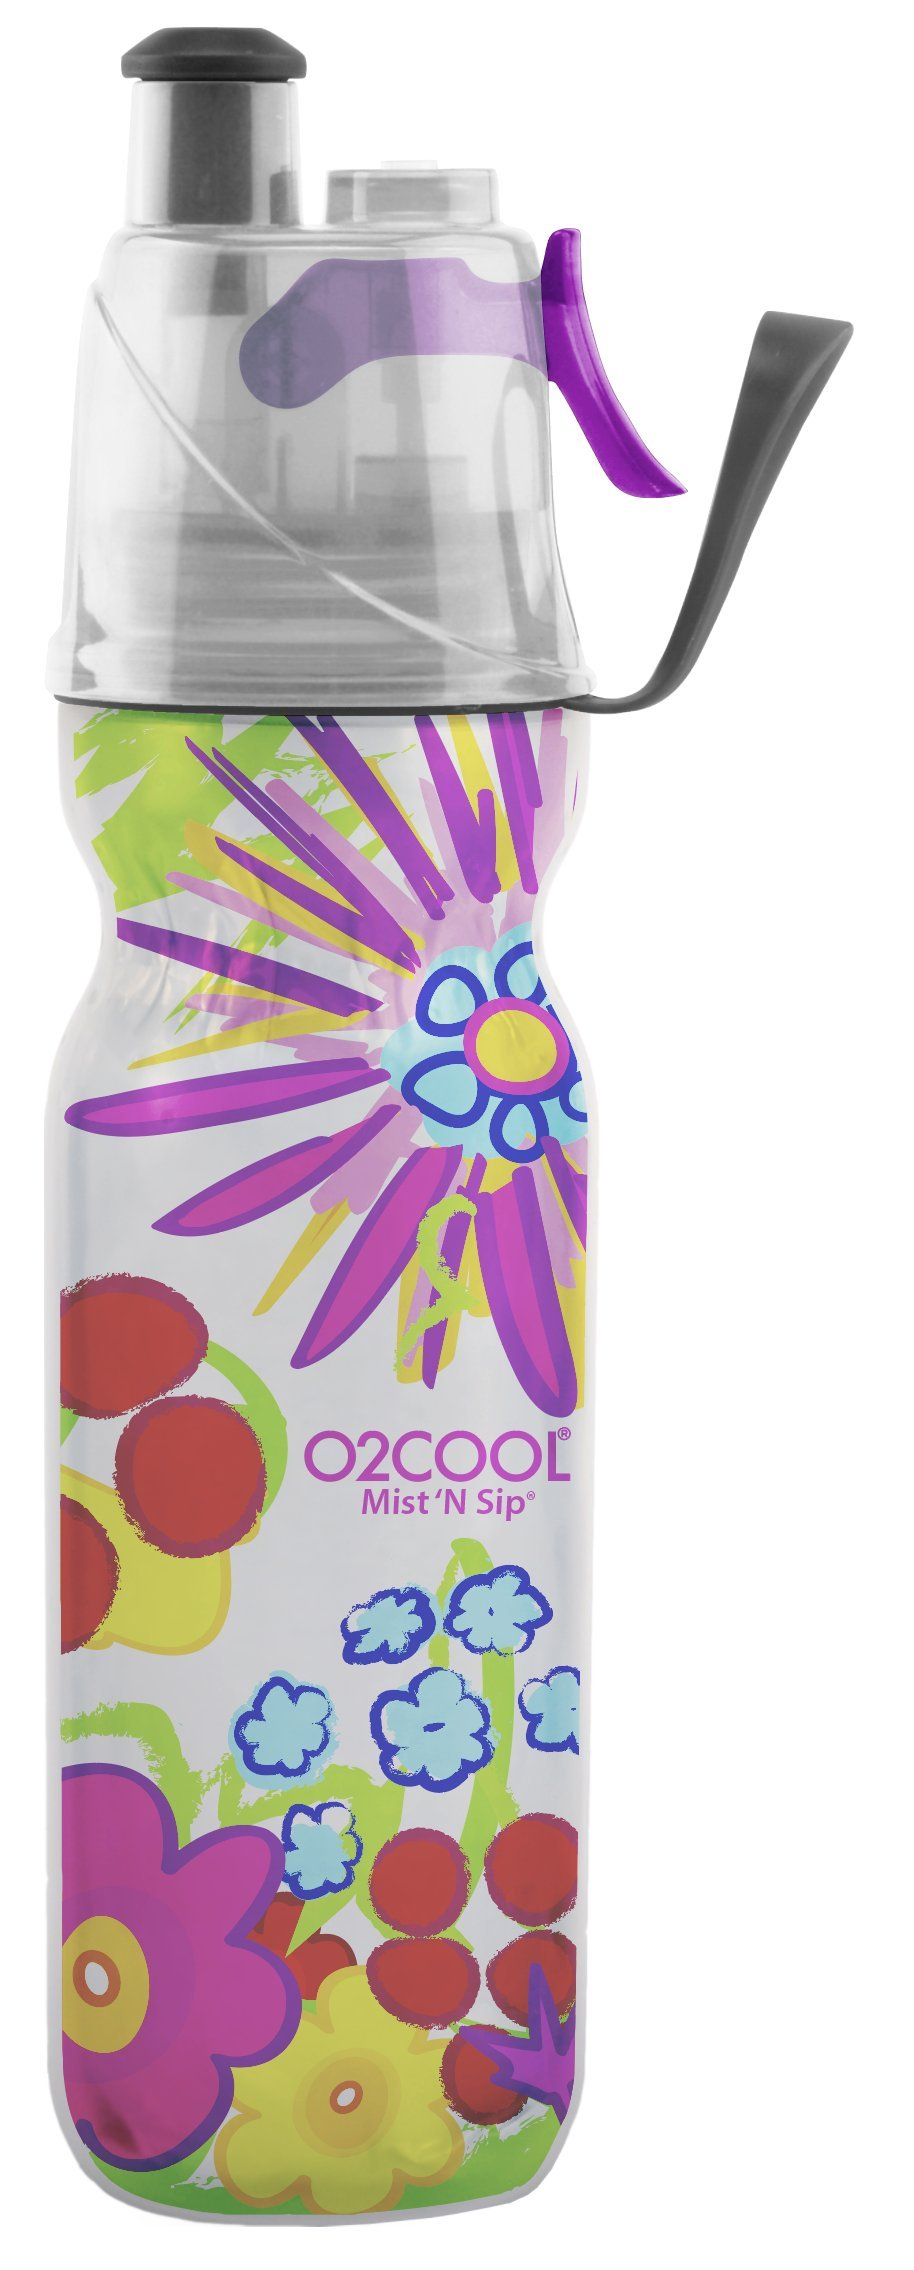 Misting Insulated Water Bottle, Mist 'N Sip Spring Flowers from Color Series by O2COOL, 20 oz